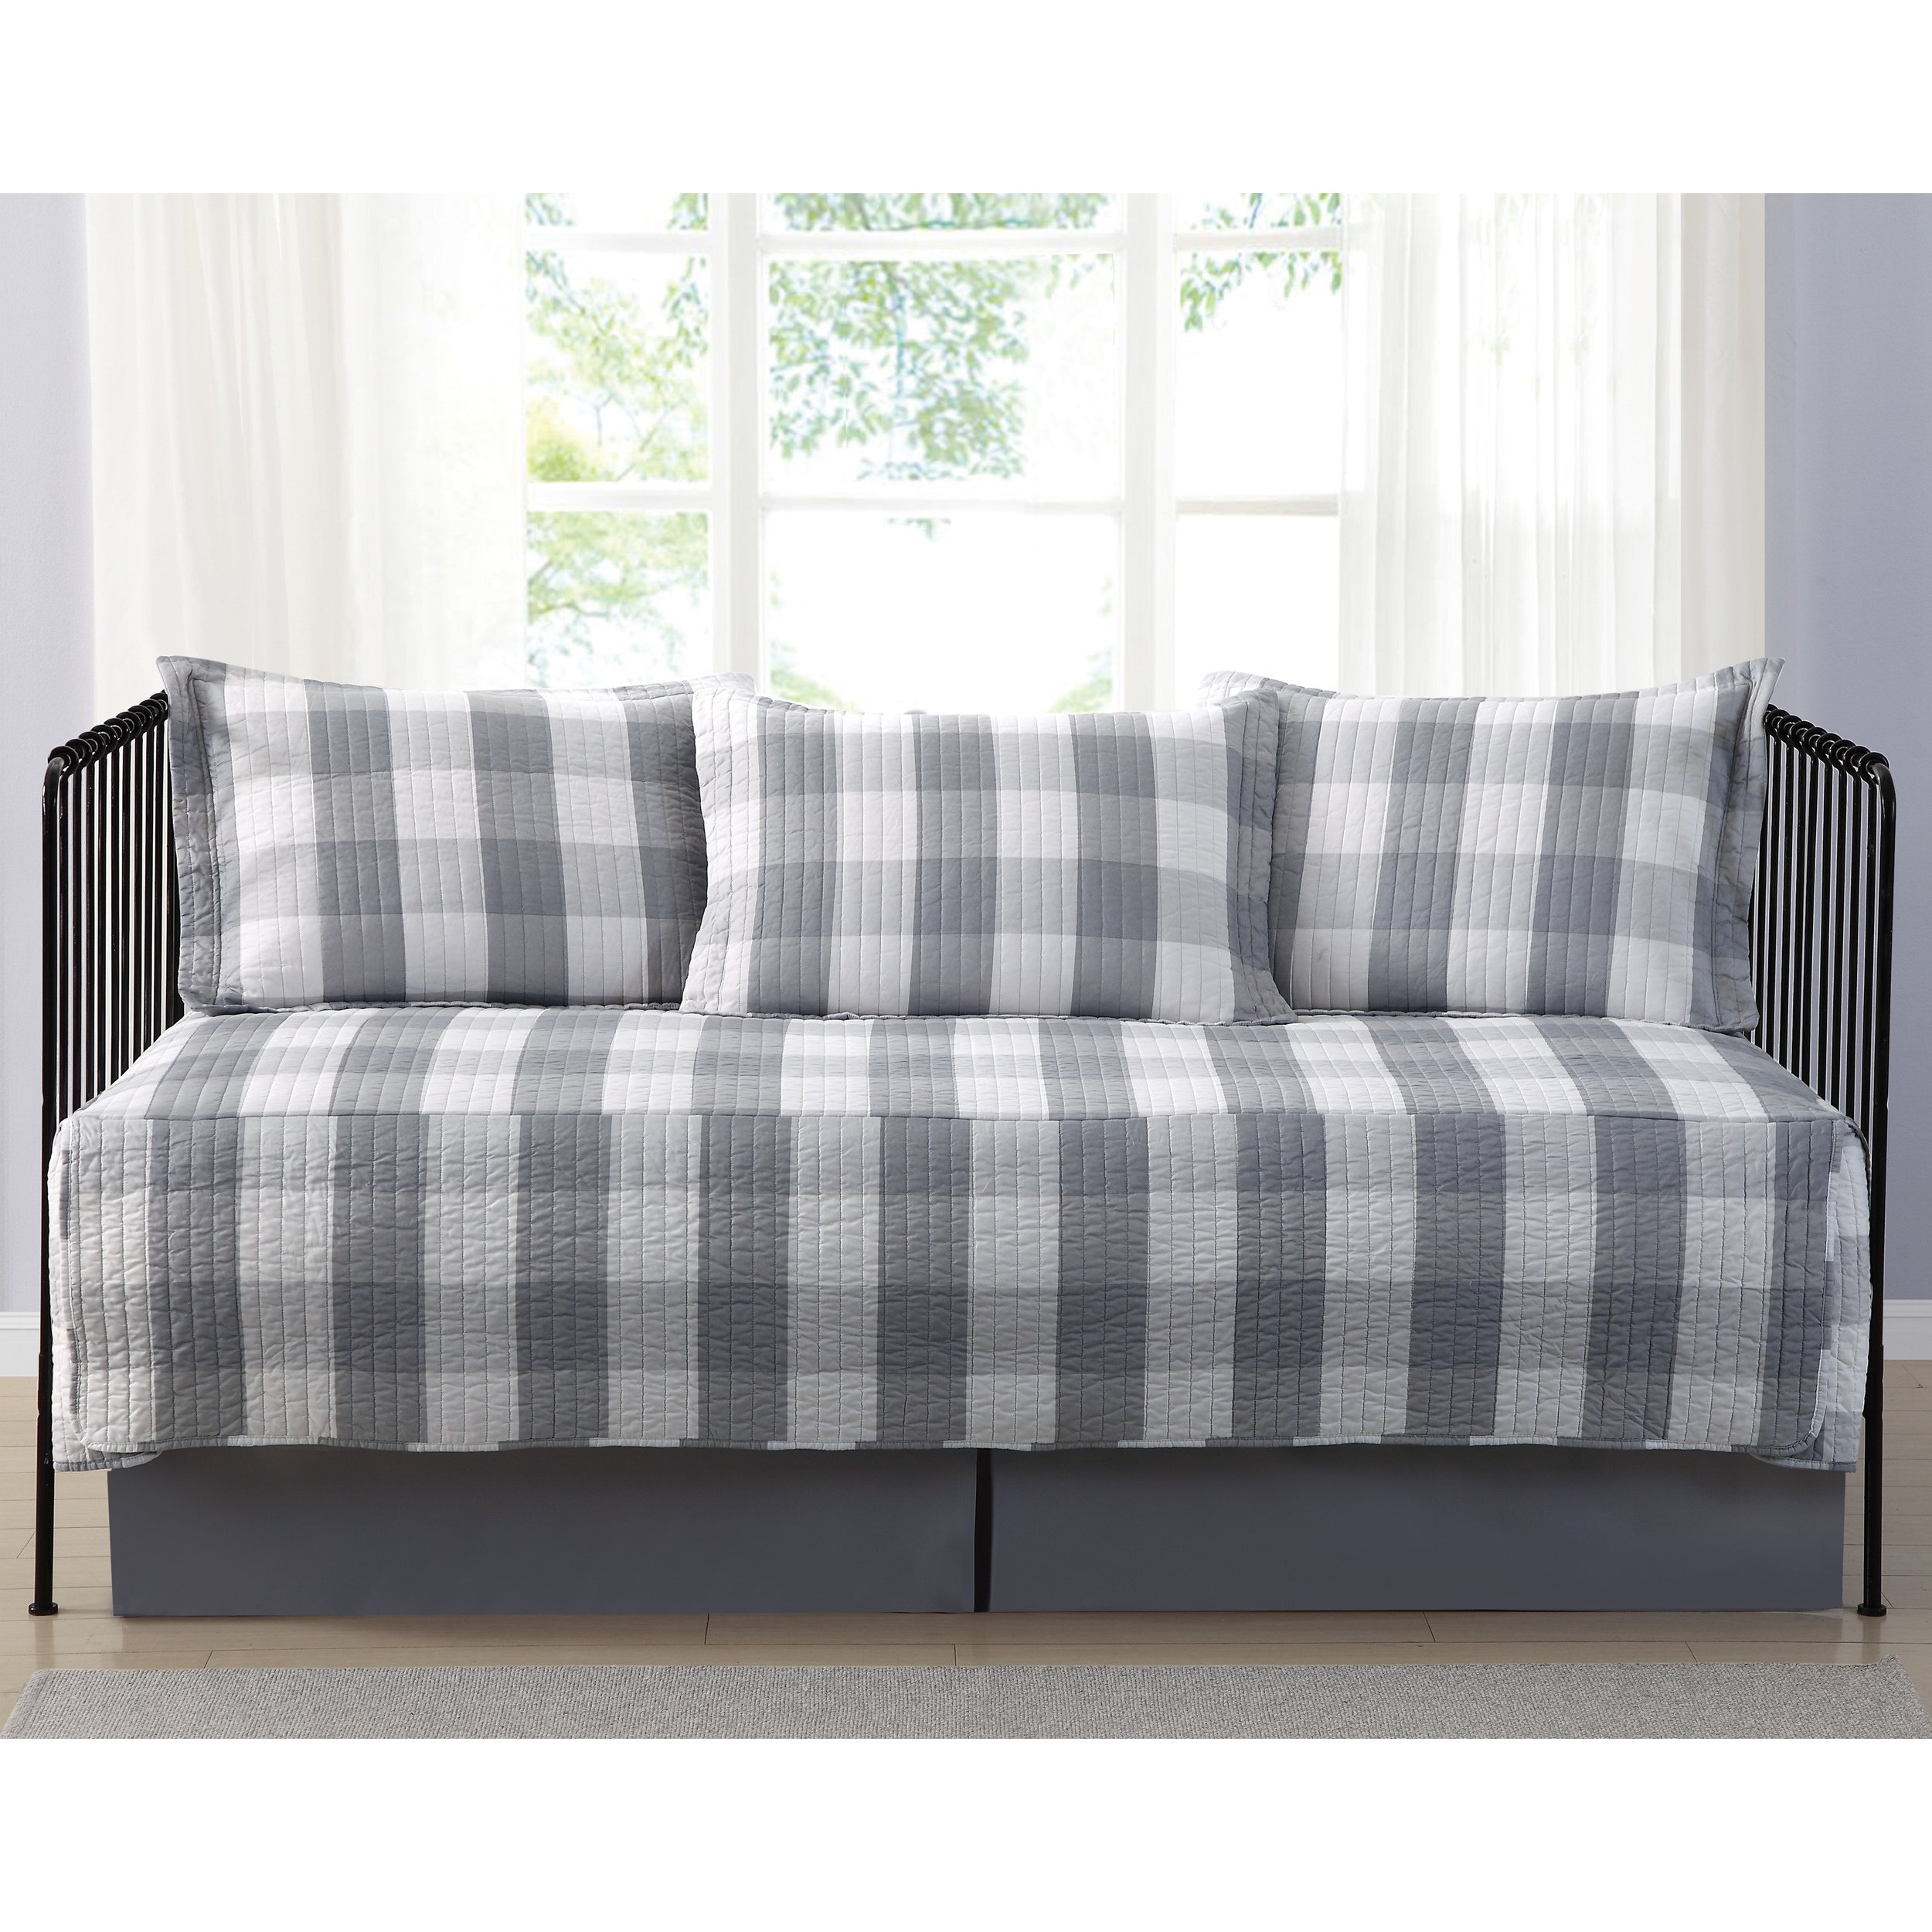 Truly Soft Everyday Buffalo Check Grey Printed 5 Piece Day Bed Set, Bedskirt Included by Truly Soft Everyday